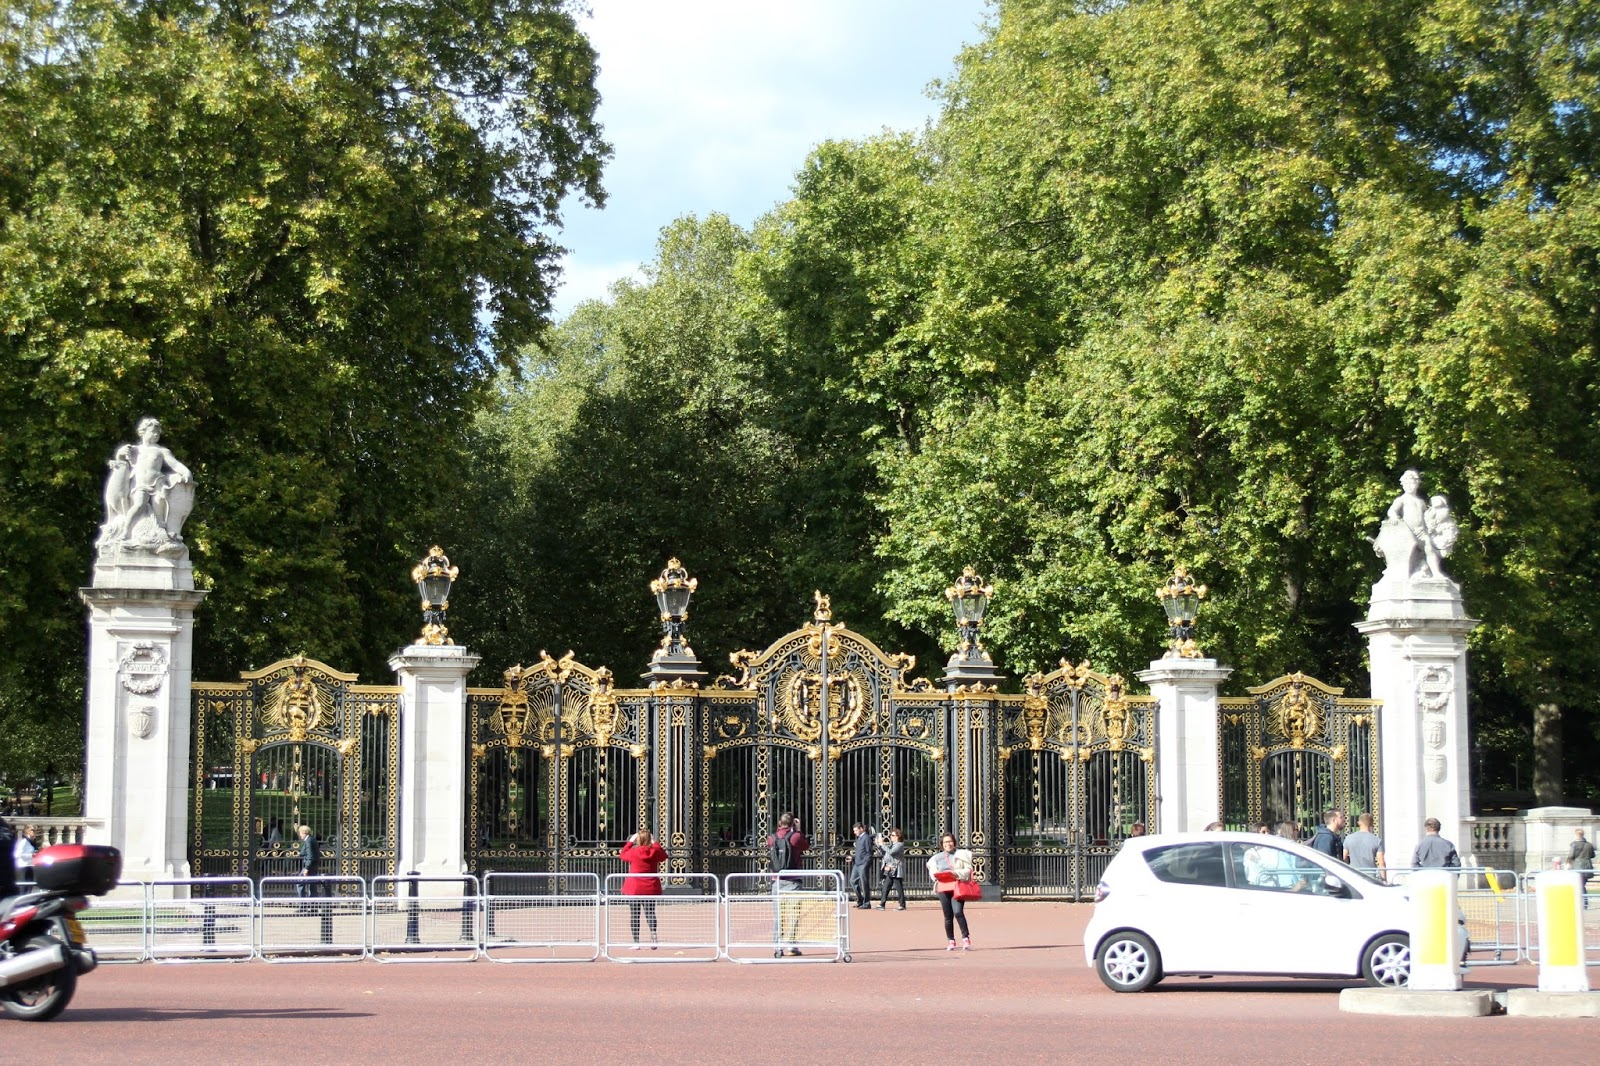 Buckingham Palace The Royal Mews Grateful Prayer Thankful Heart